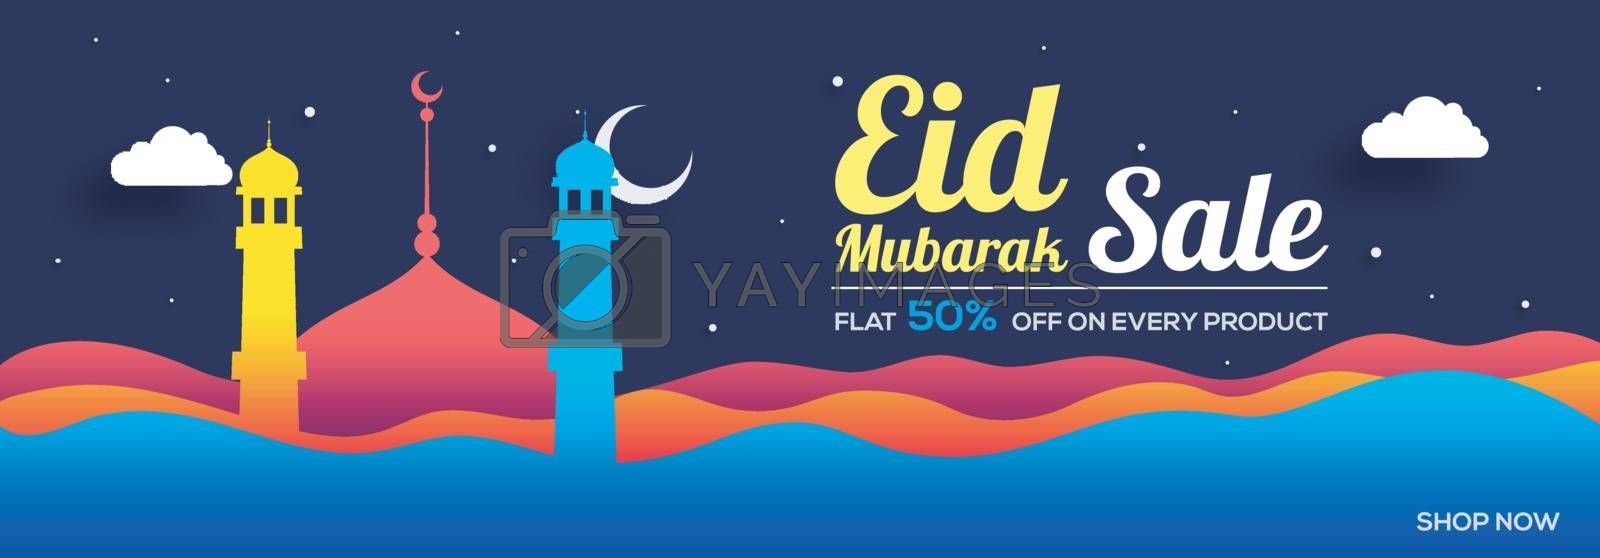 Eid Mubarak Sale banner decorated with colorful mosque and abstract waves.